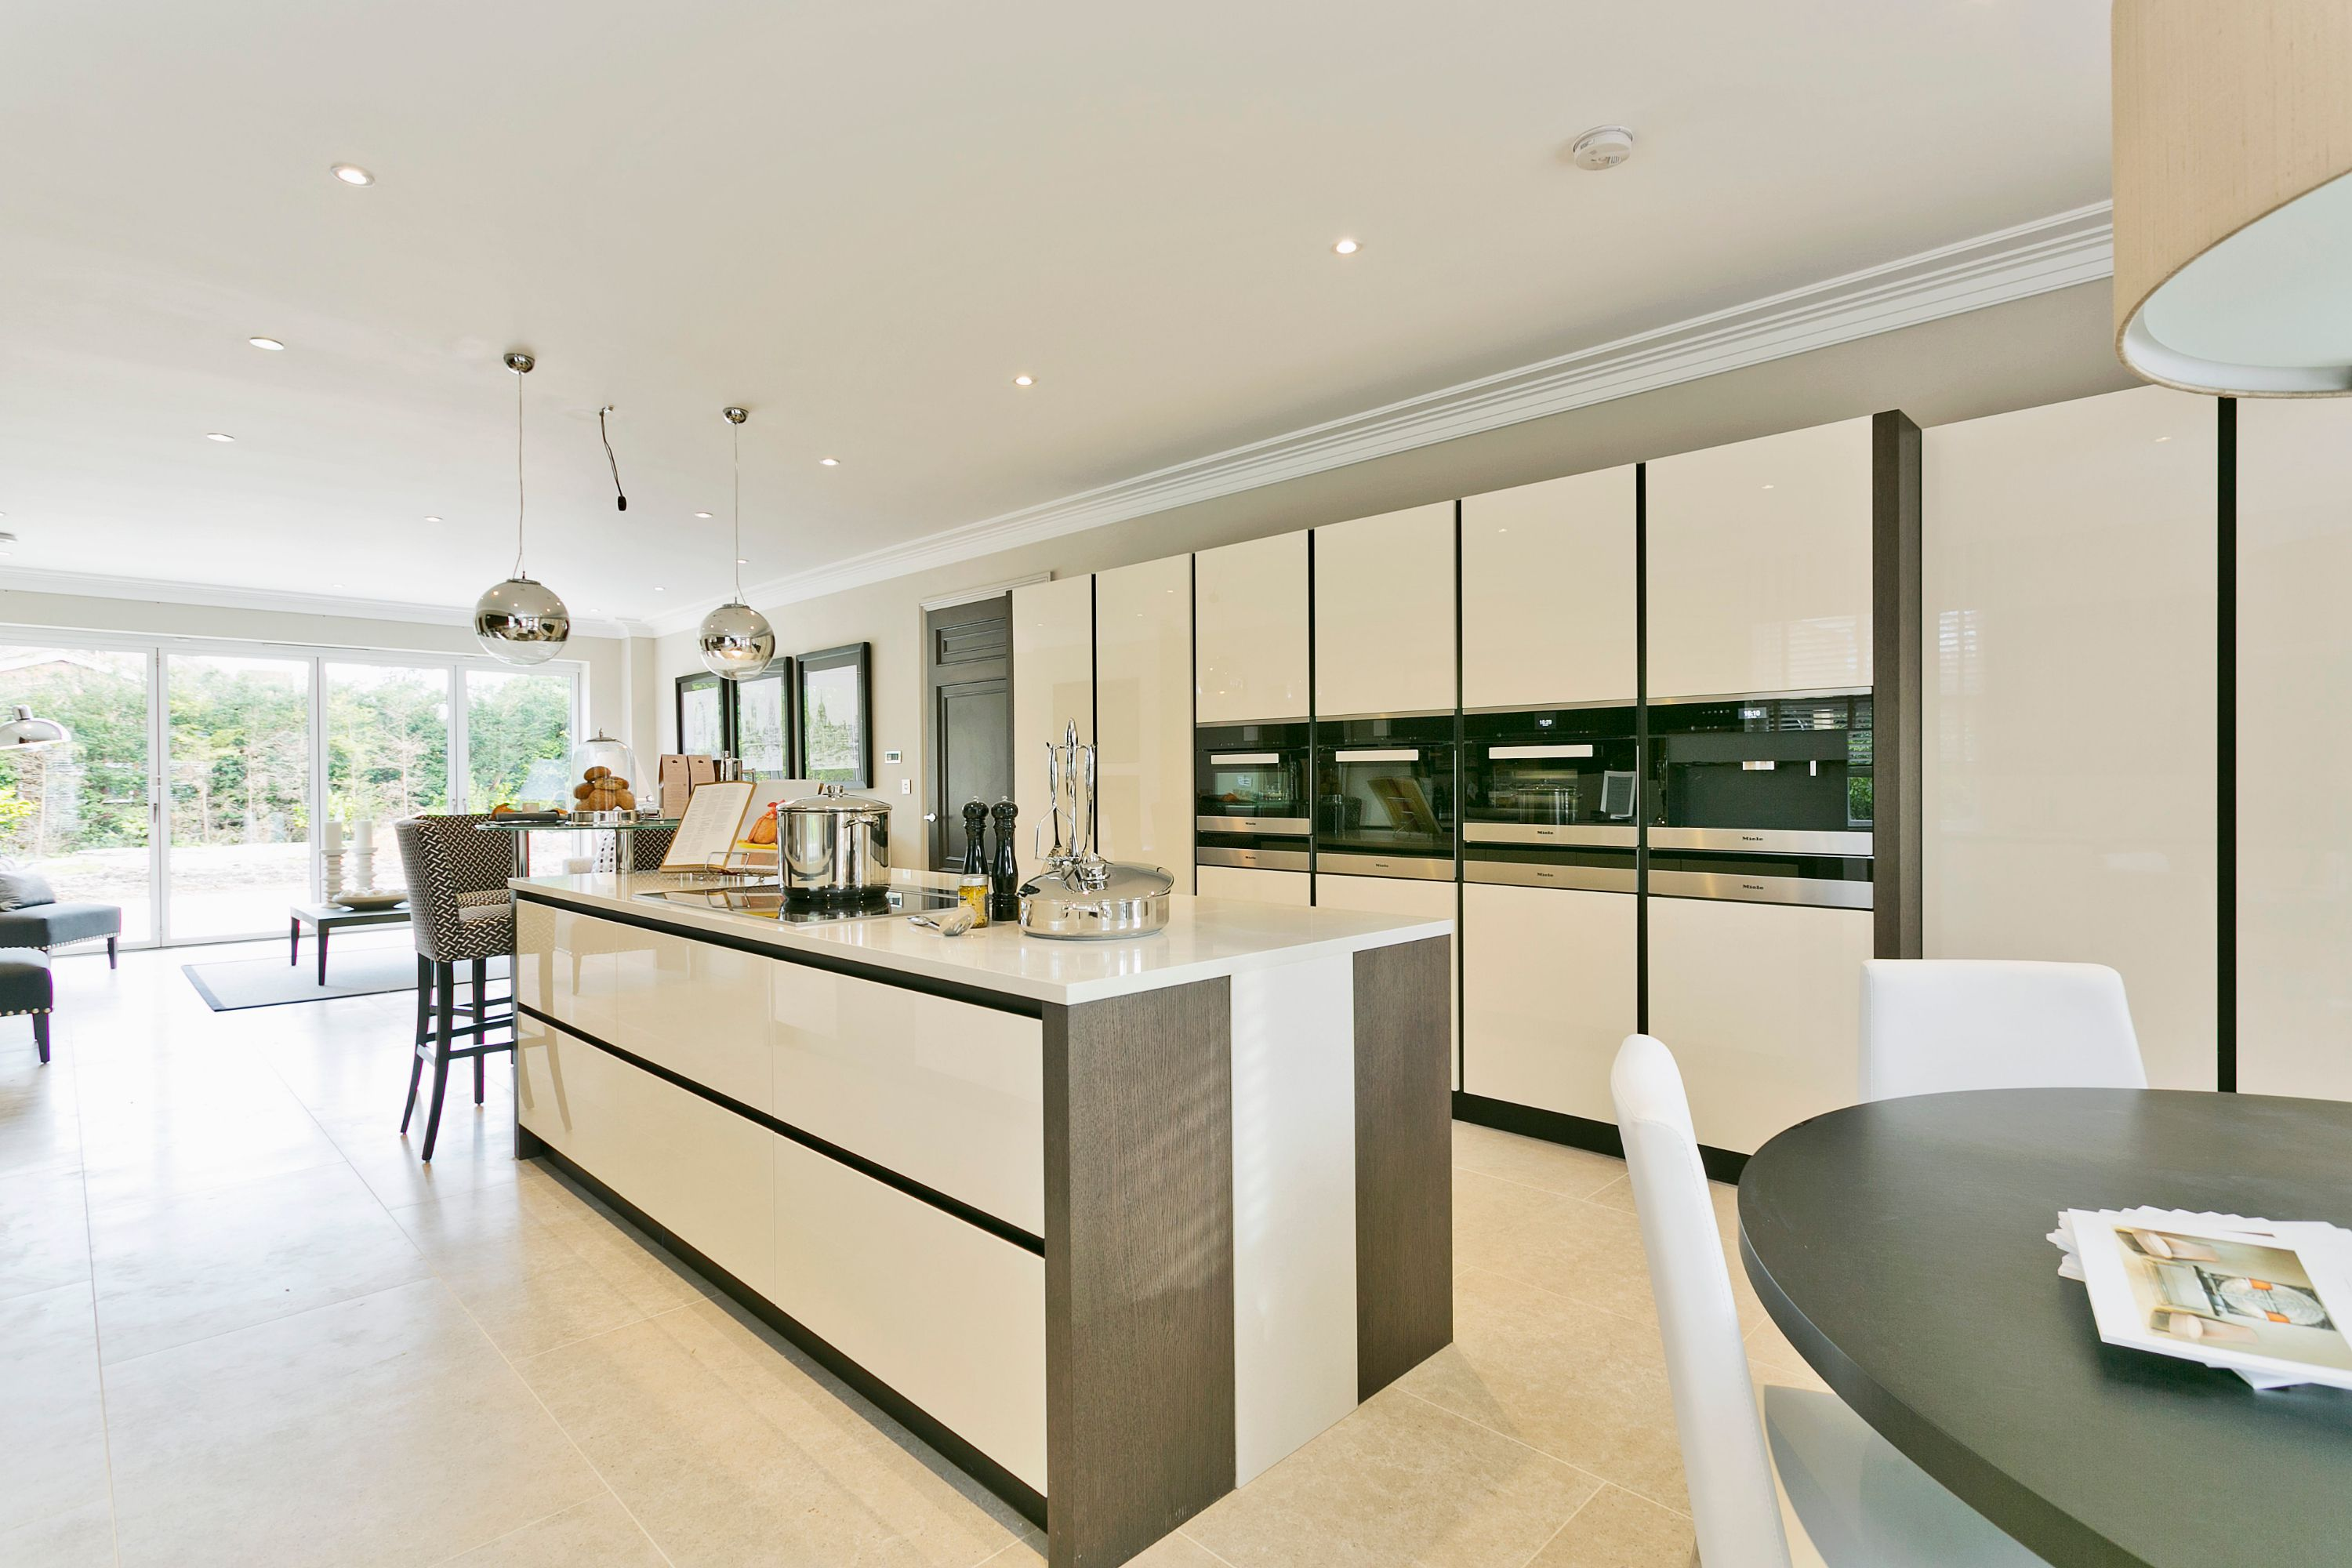 This light & airy open plan kitchen has strong lines